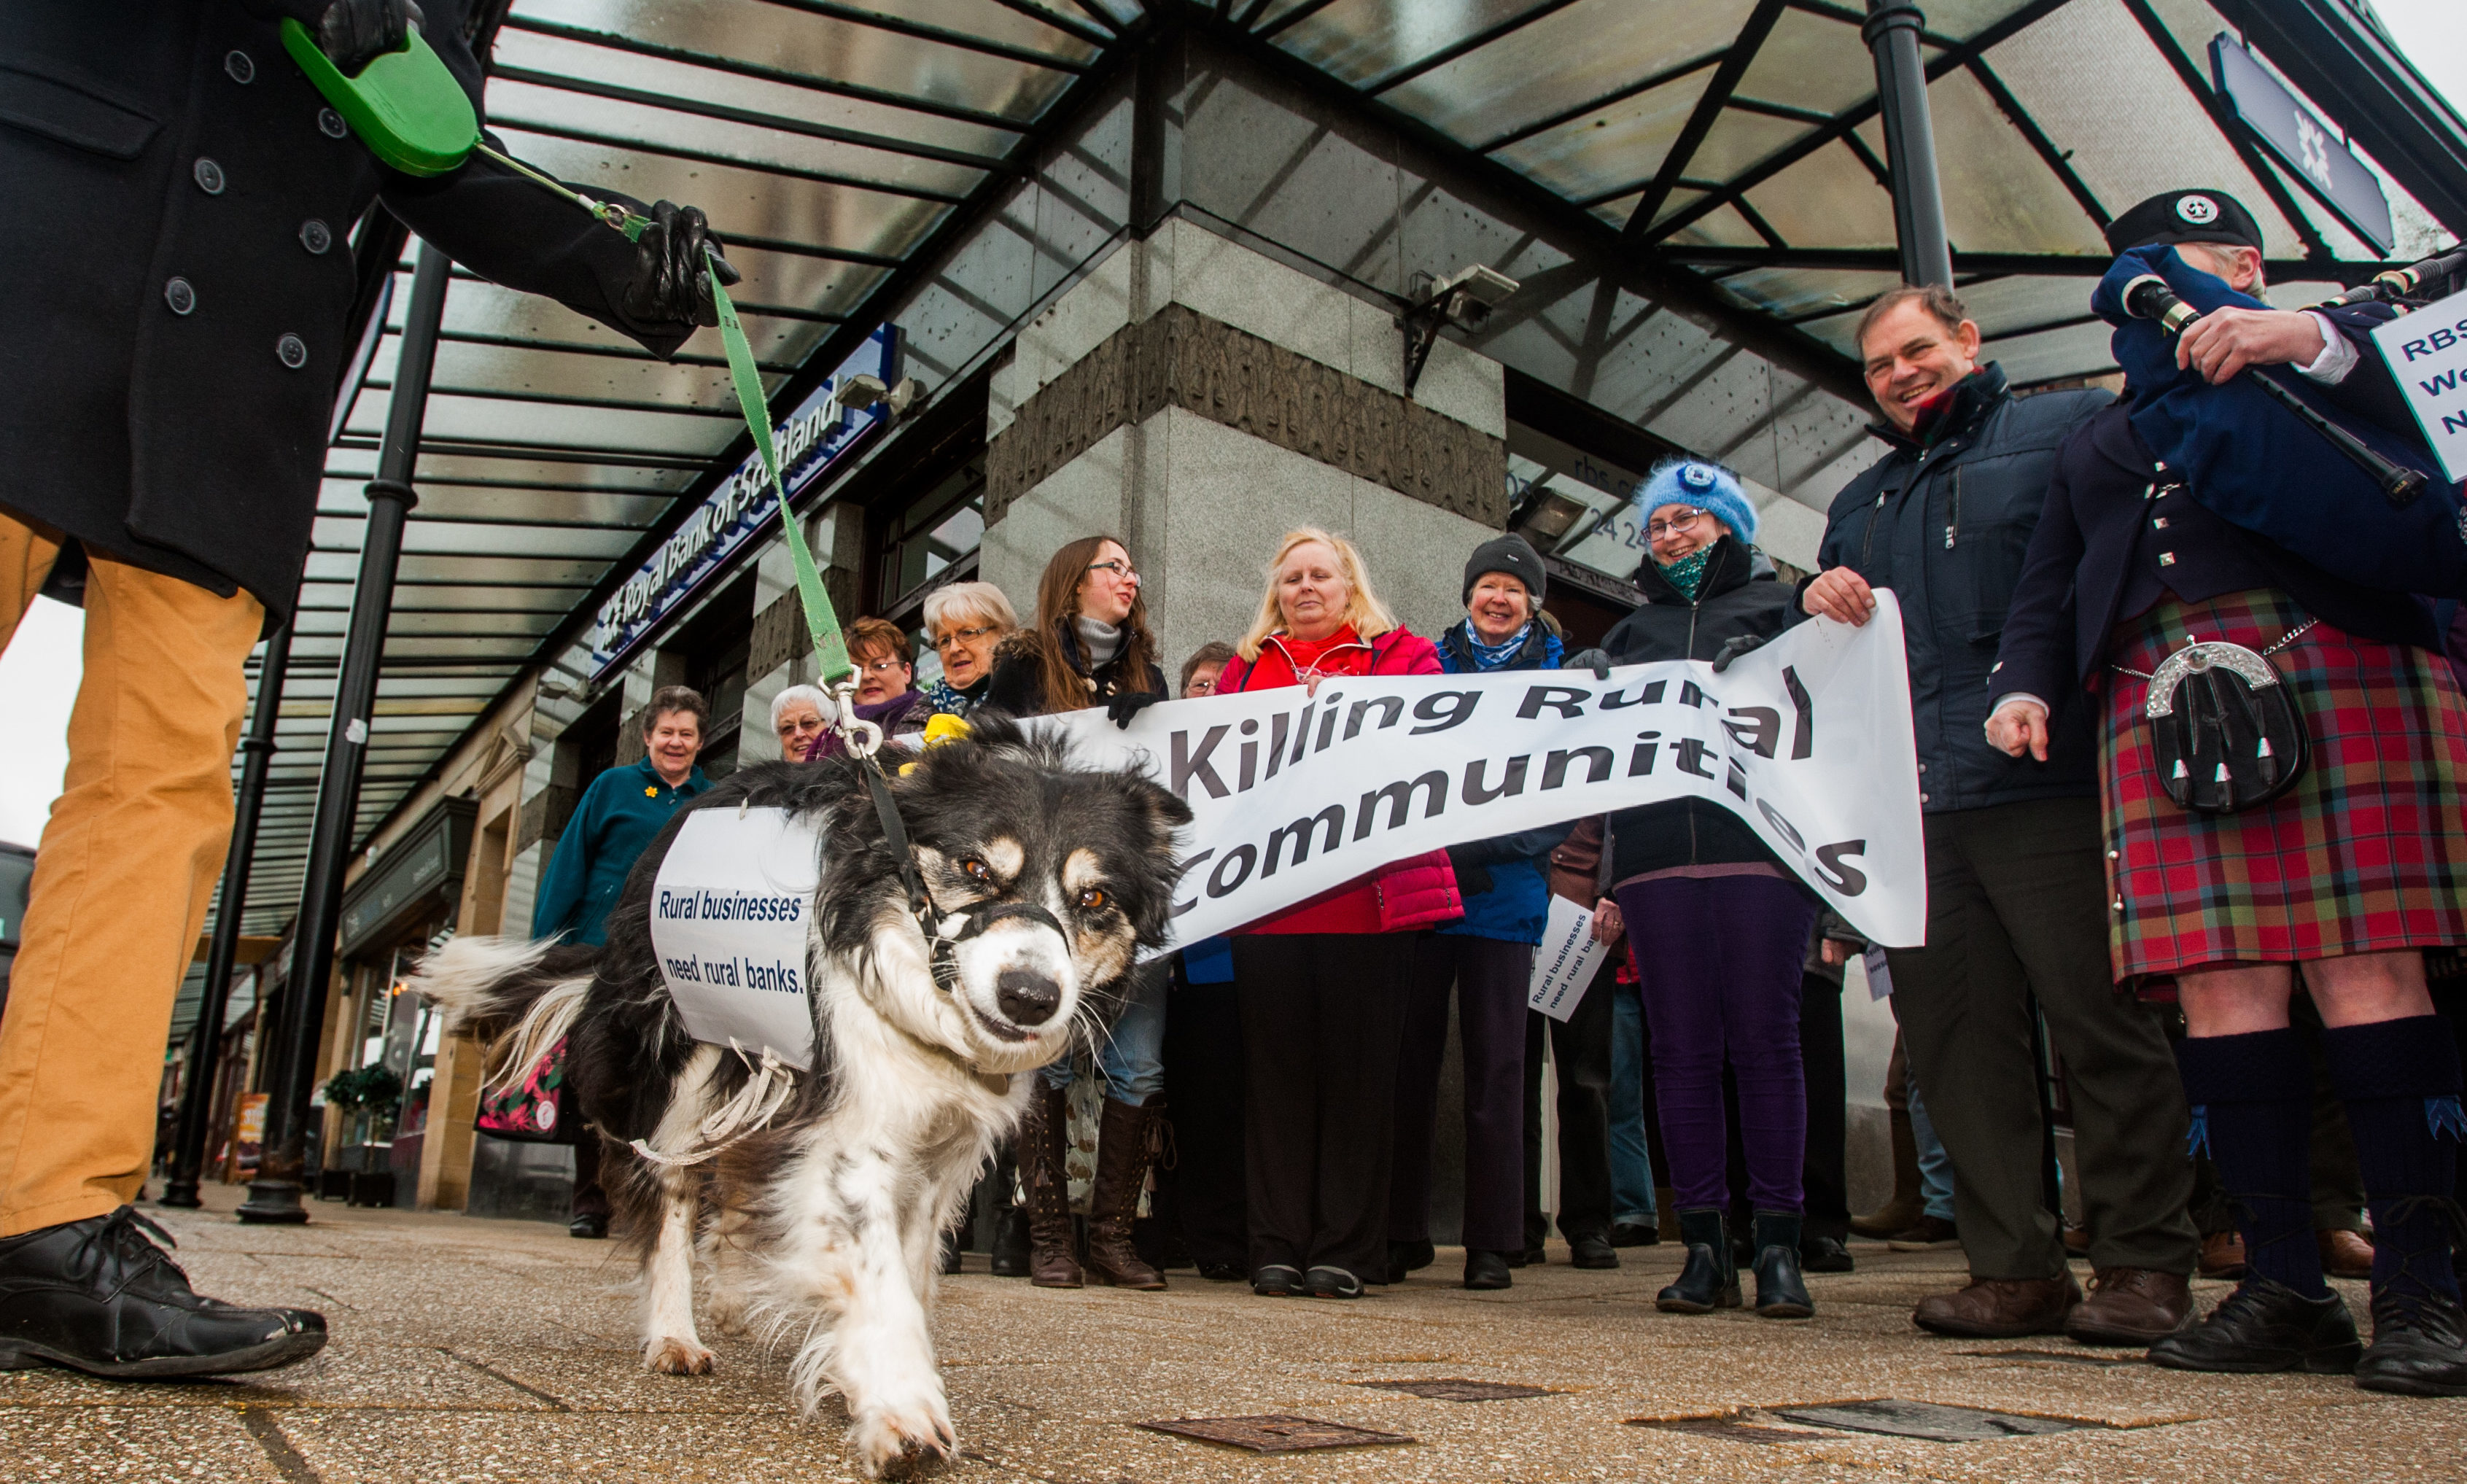 Demonstrators gather for the protest outside the closure threatened Piltochry branch of RBS.